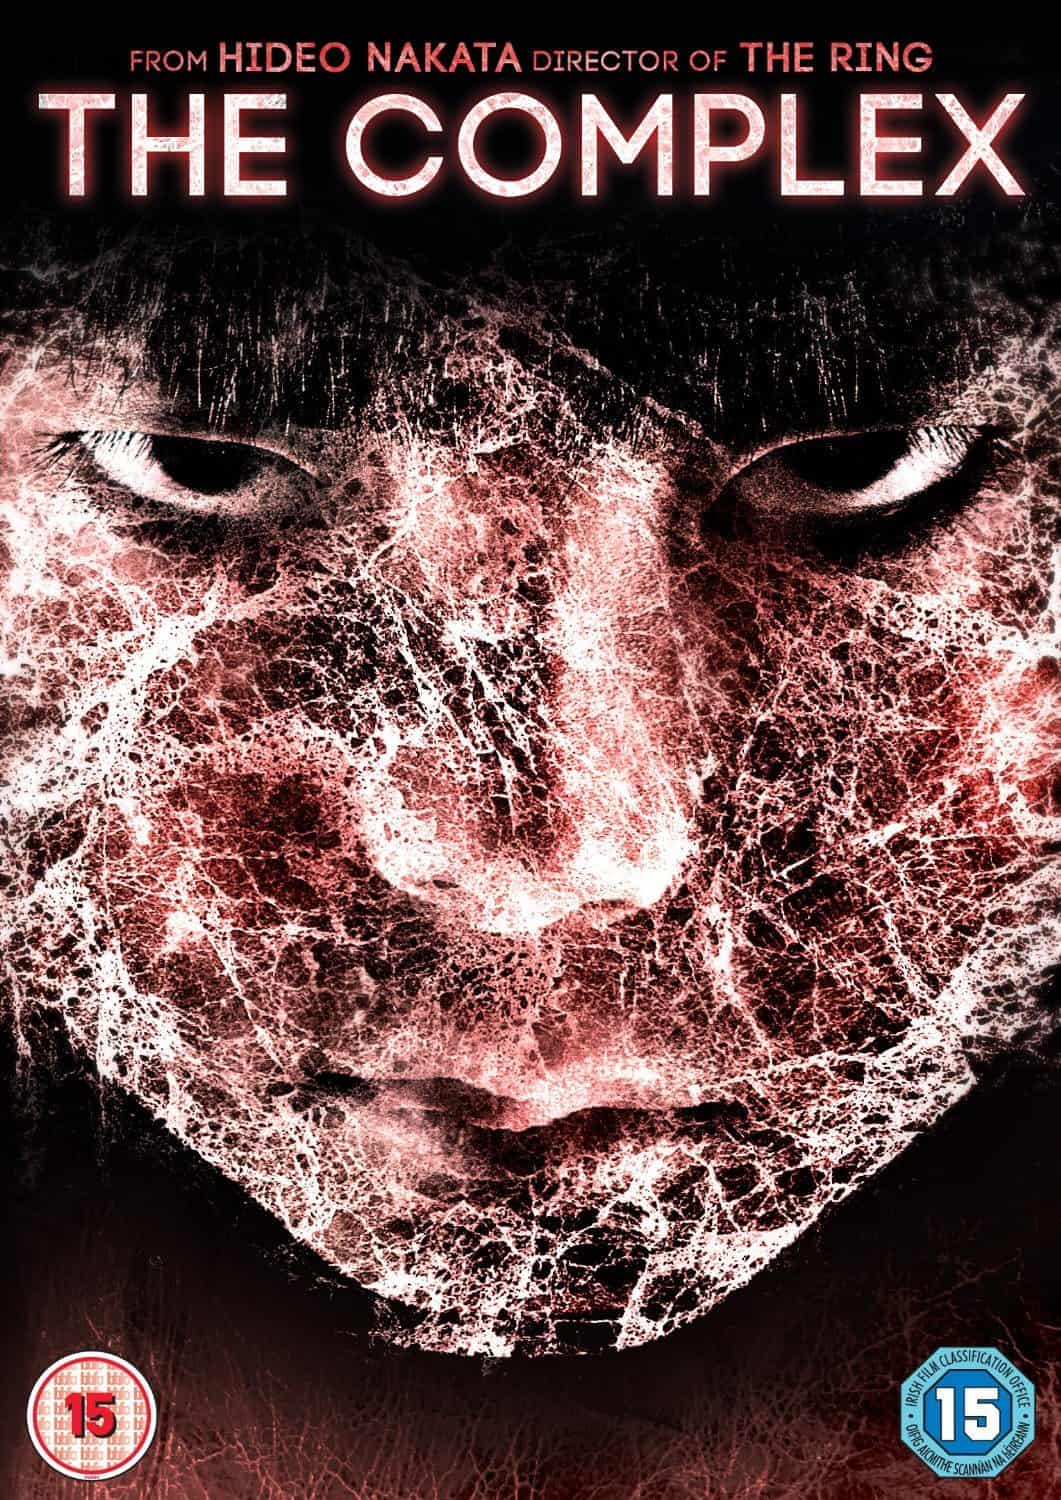 Horror Movie Review: J-Horror: The Complex (2013)